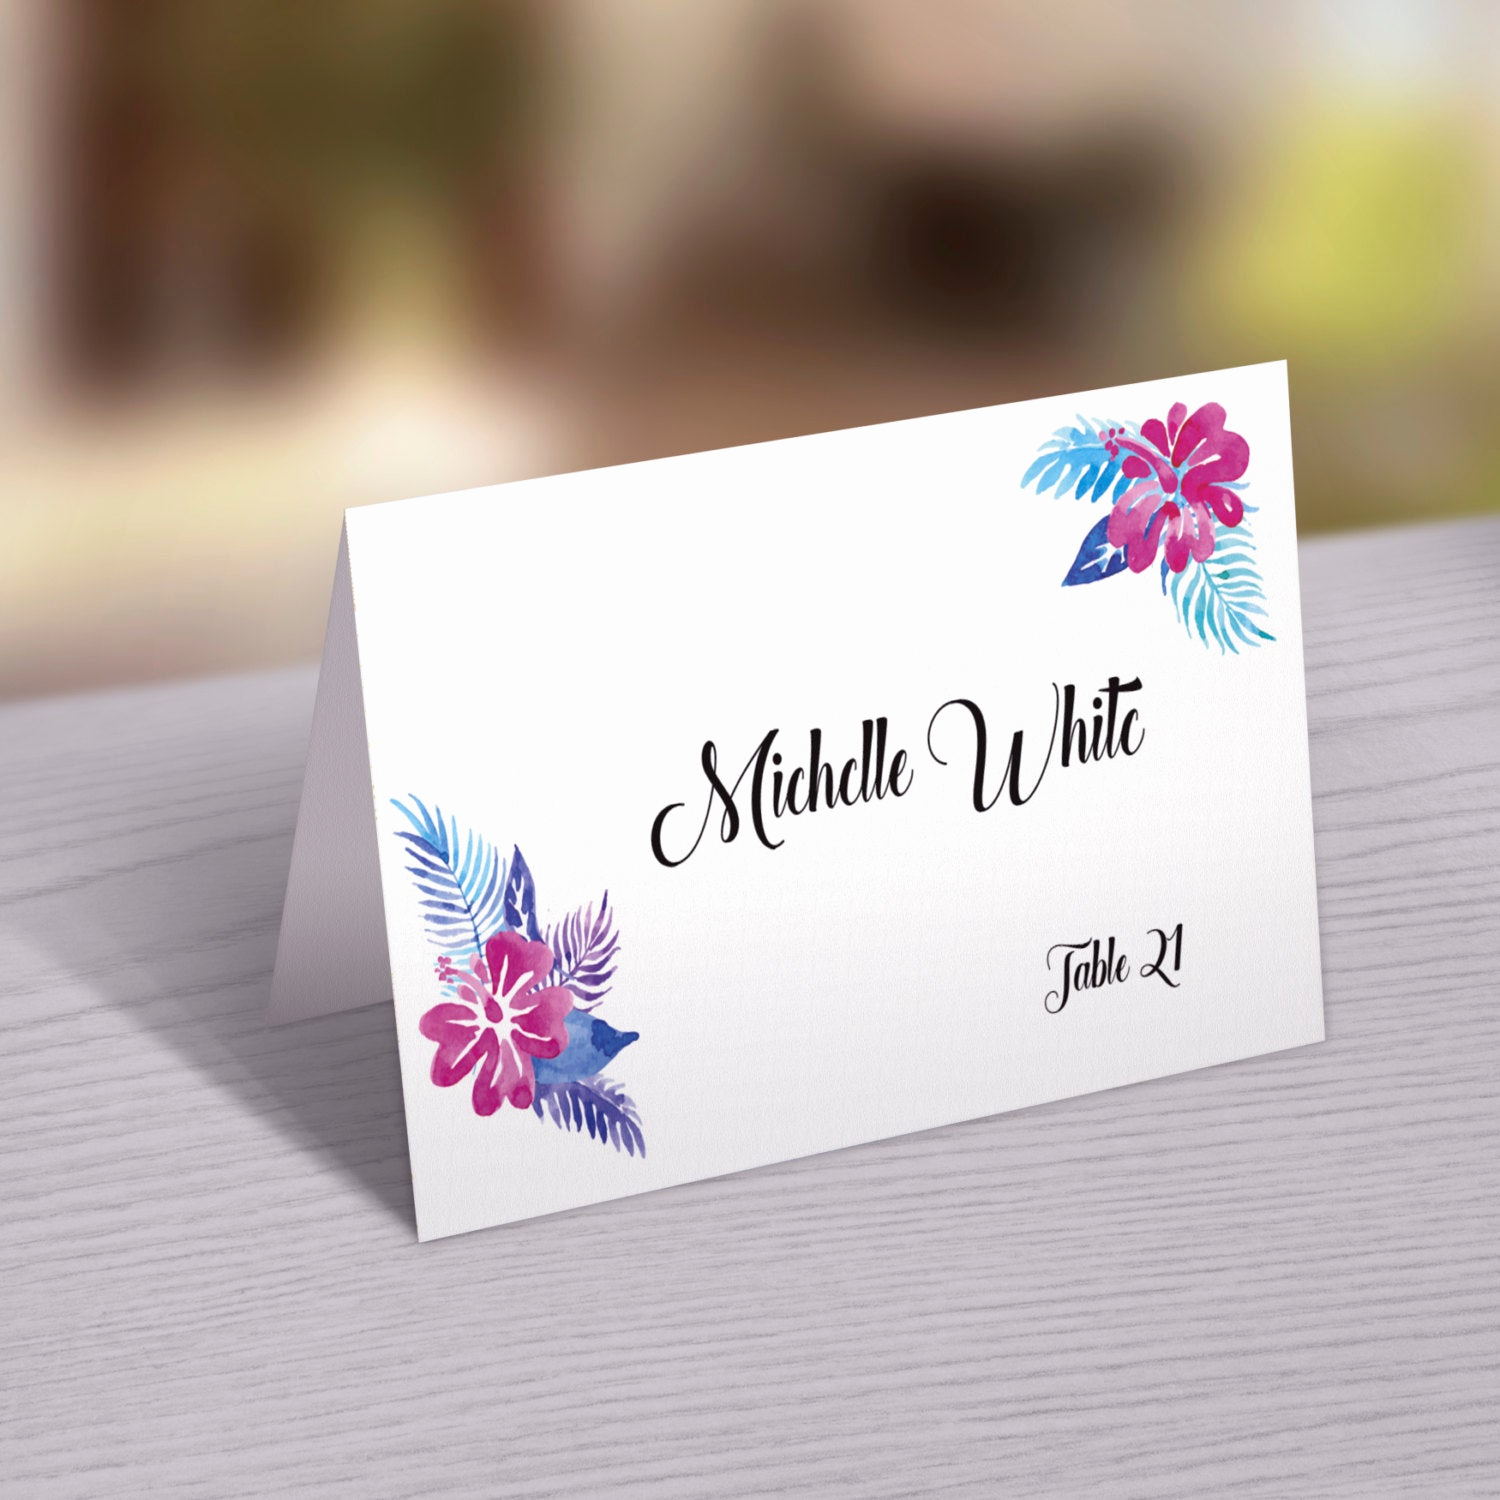 Wedding Place Cards Template New Wedding Place Card Template Printable Wedding Place Cards